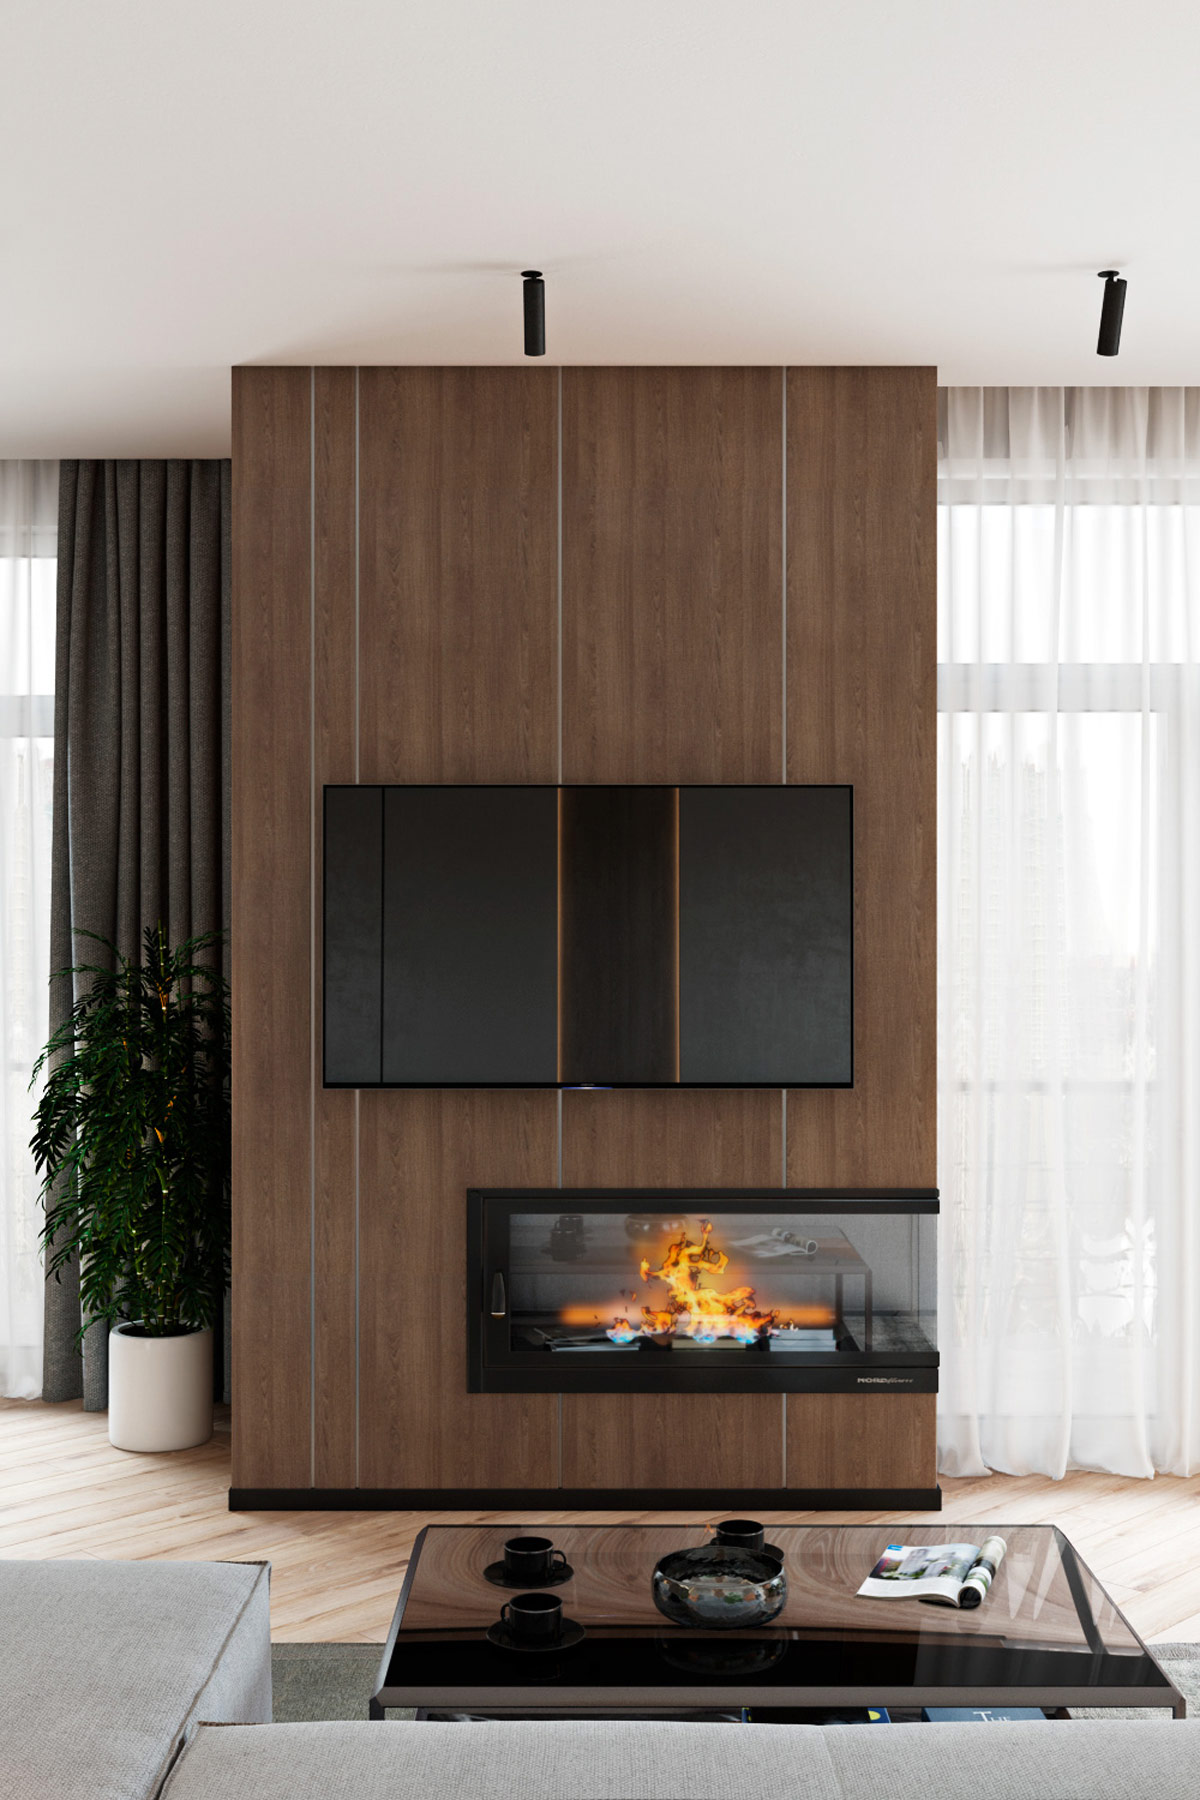 unique-modern-fireplace-design-on-wood-paneled-television-wall-in-contemporary-family-home-interior